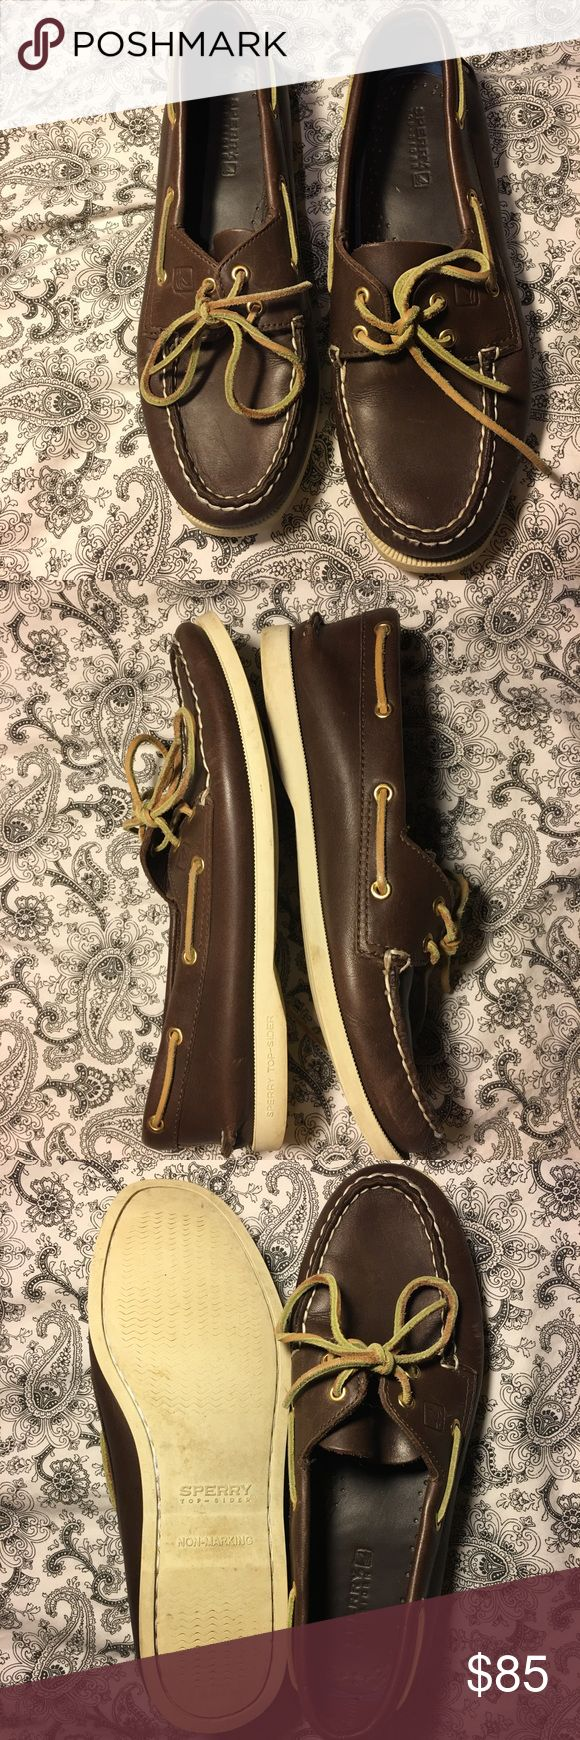 🎉FLASH SALE 🍾 Sperry's Womens 8.5 M Excellent condition , clean , leather.. LESS ON MERC APP Sperry Shoes